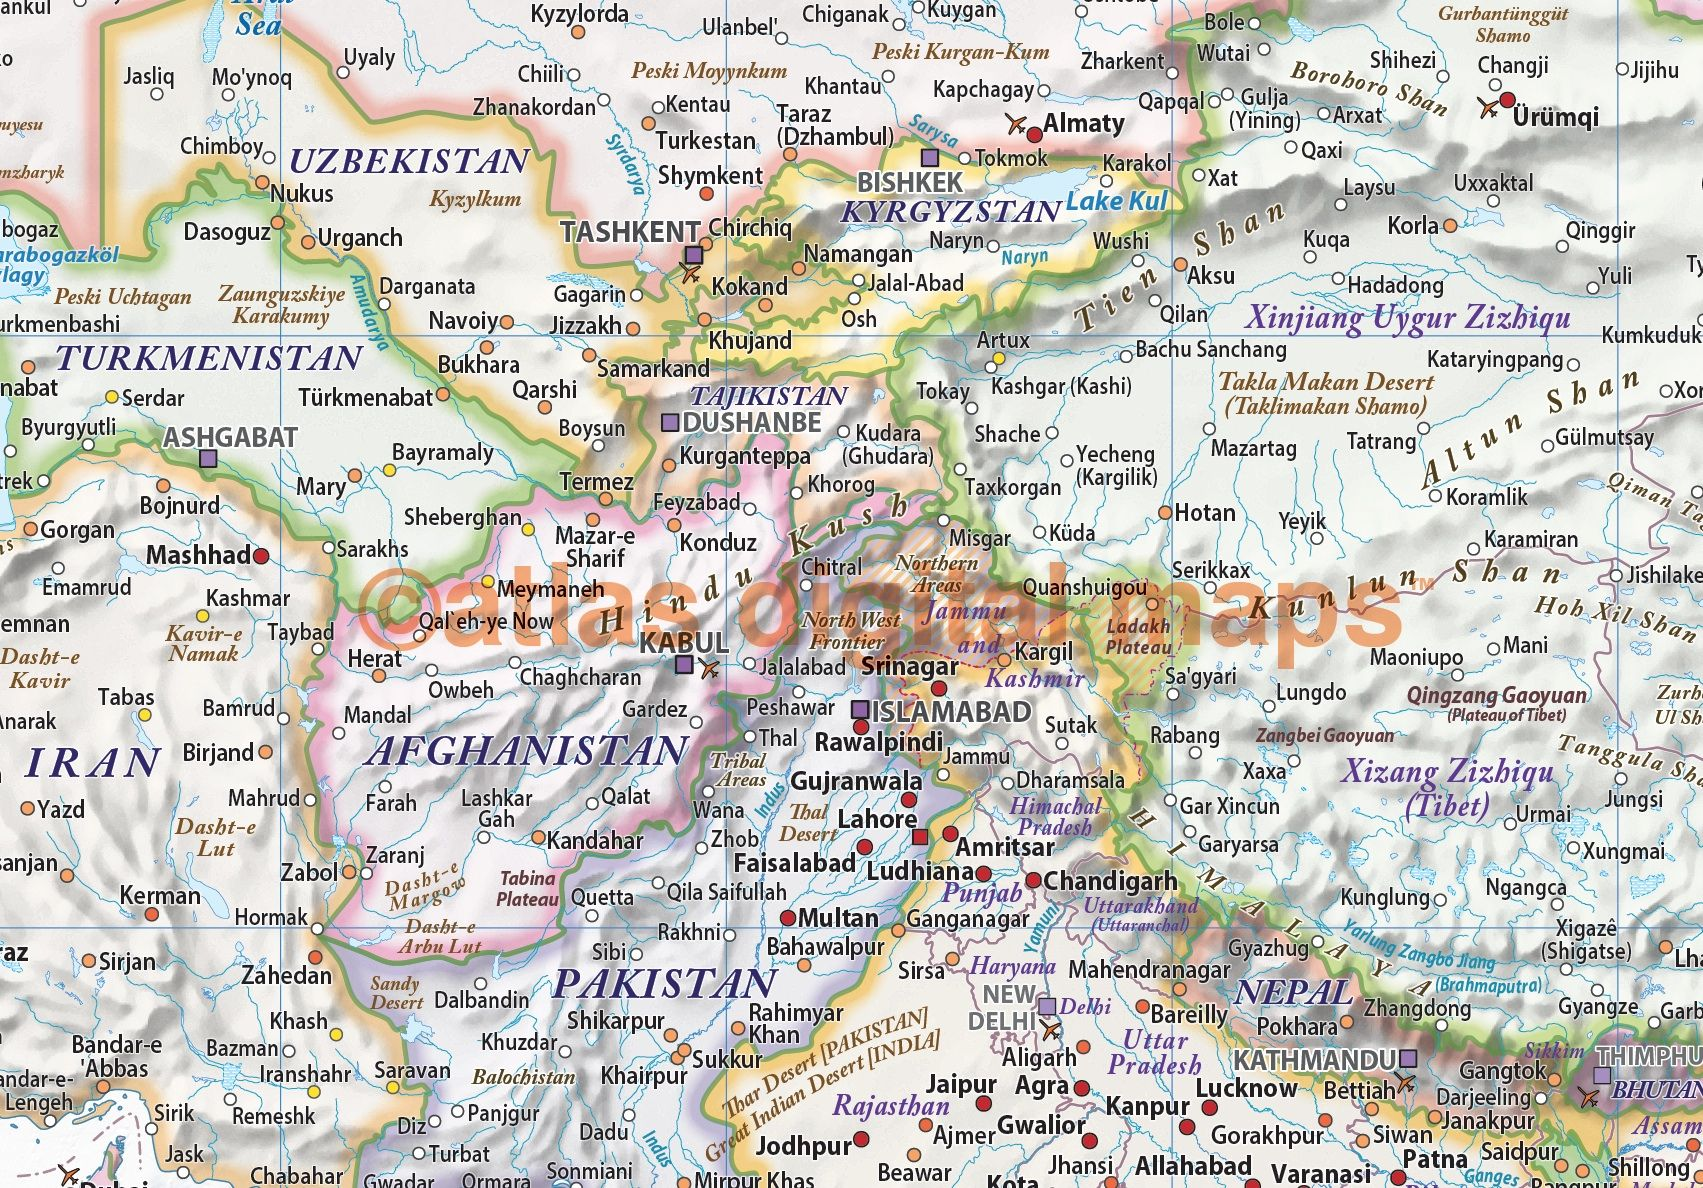 Political And Relief Map Of Central Asia In Light Pastel Colours - Central asia political map